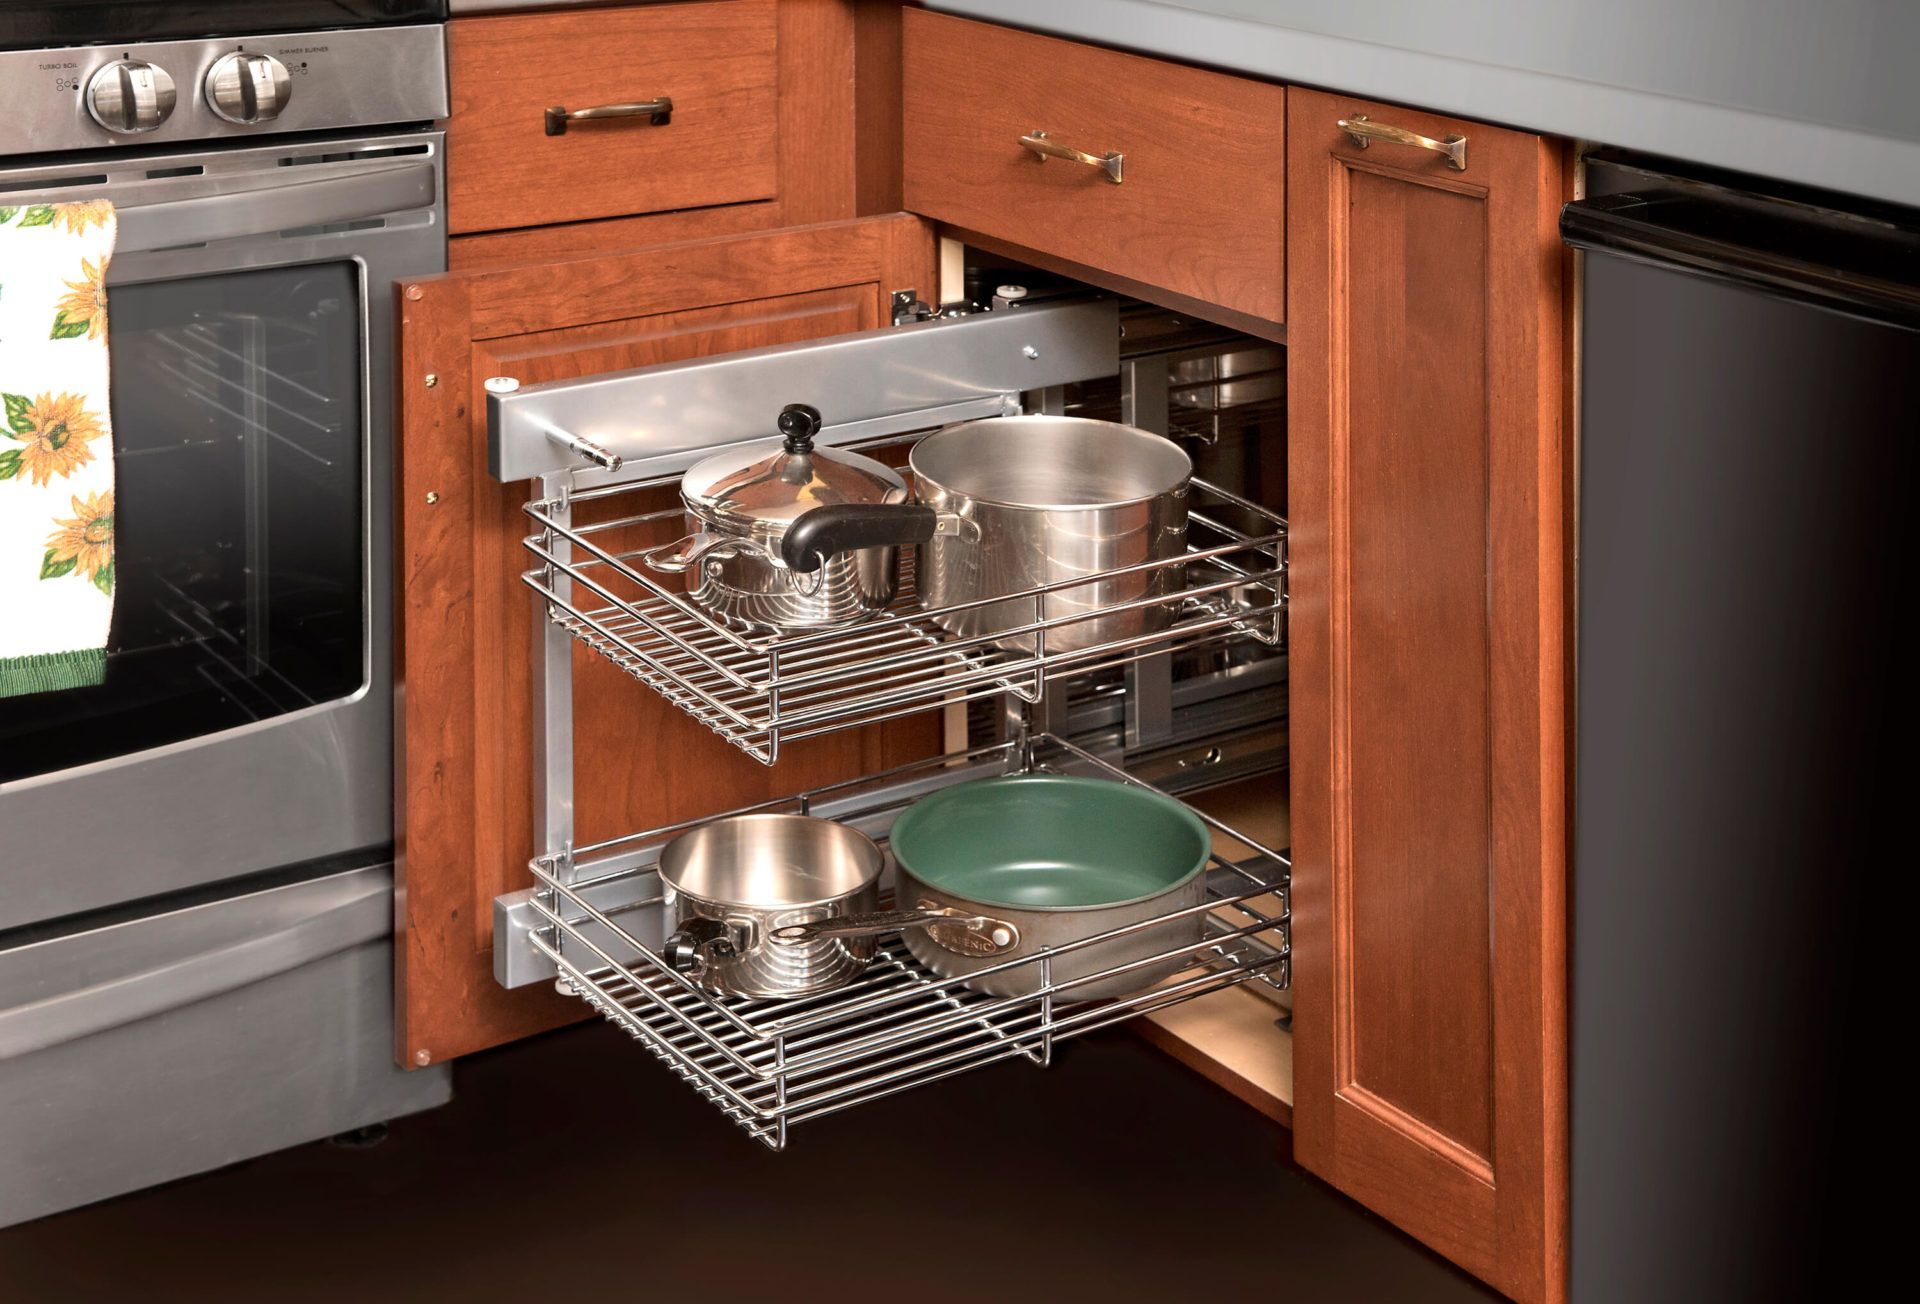 Kitchen Cabinet Refacing Gallery In 2020 Refacing Kitchen Cabinets Cabinet Refacing Kitchen